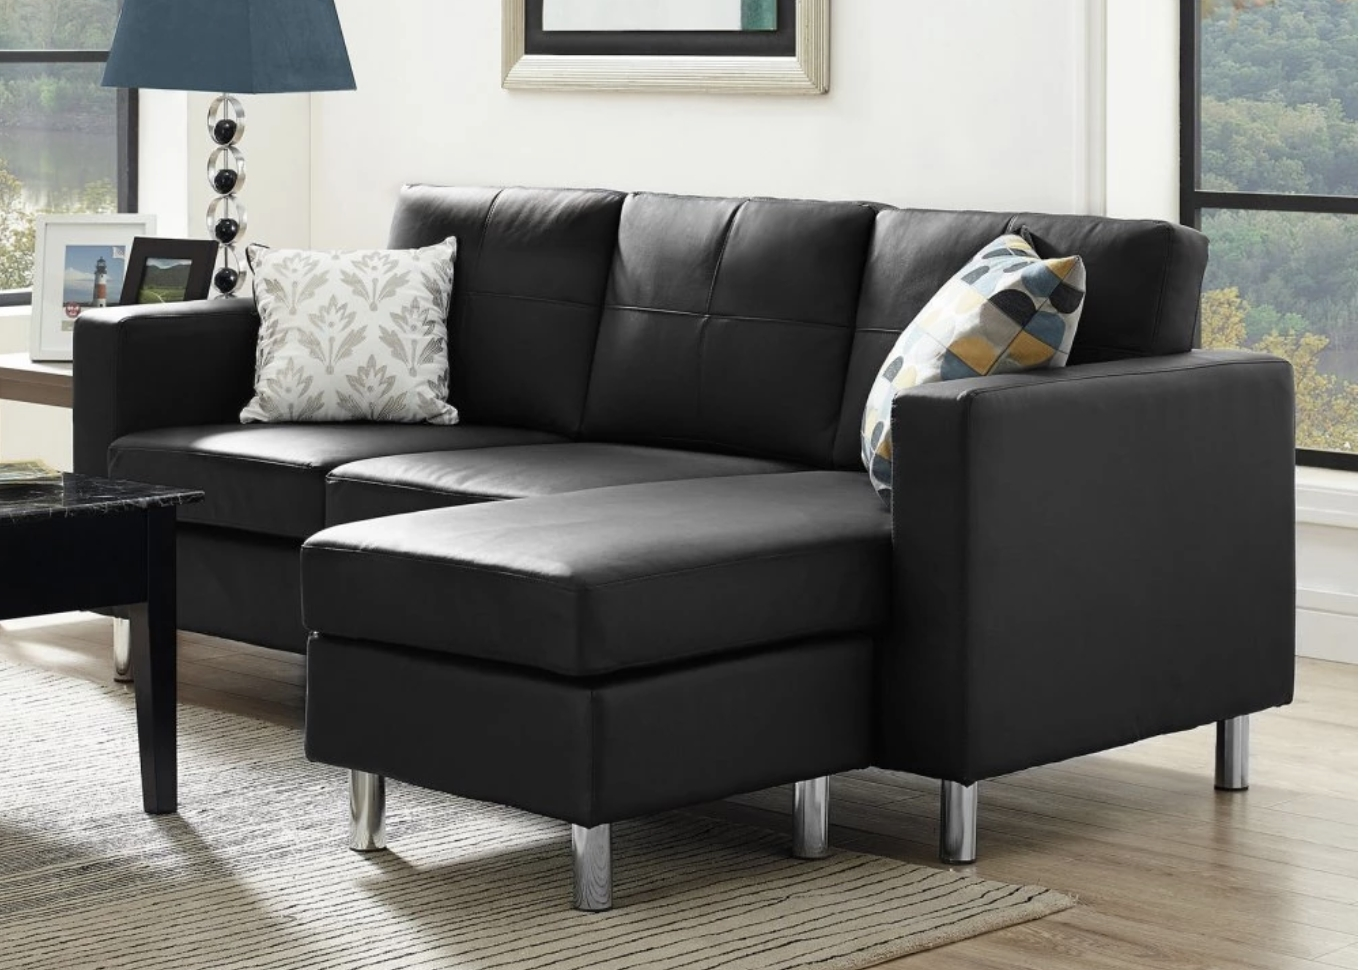 Well Known 75 Modern Sectional Sofas For Small Spaces (2018) With 100X80 Sectional Sofas (View 6 of 15)